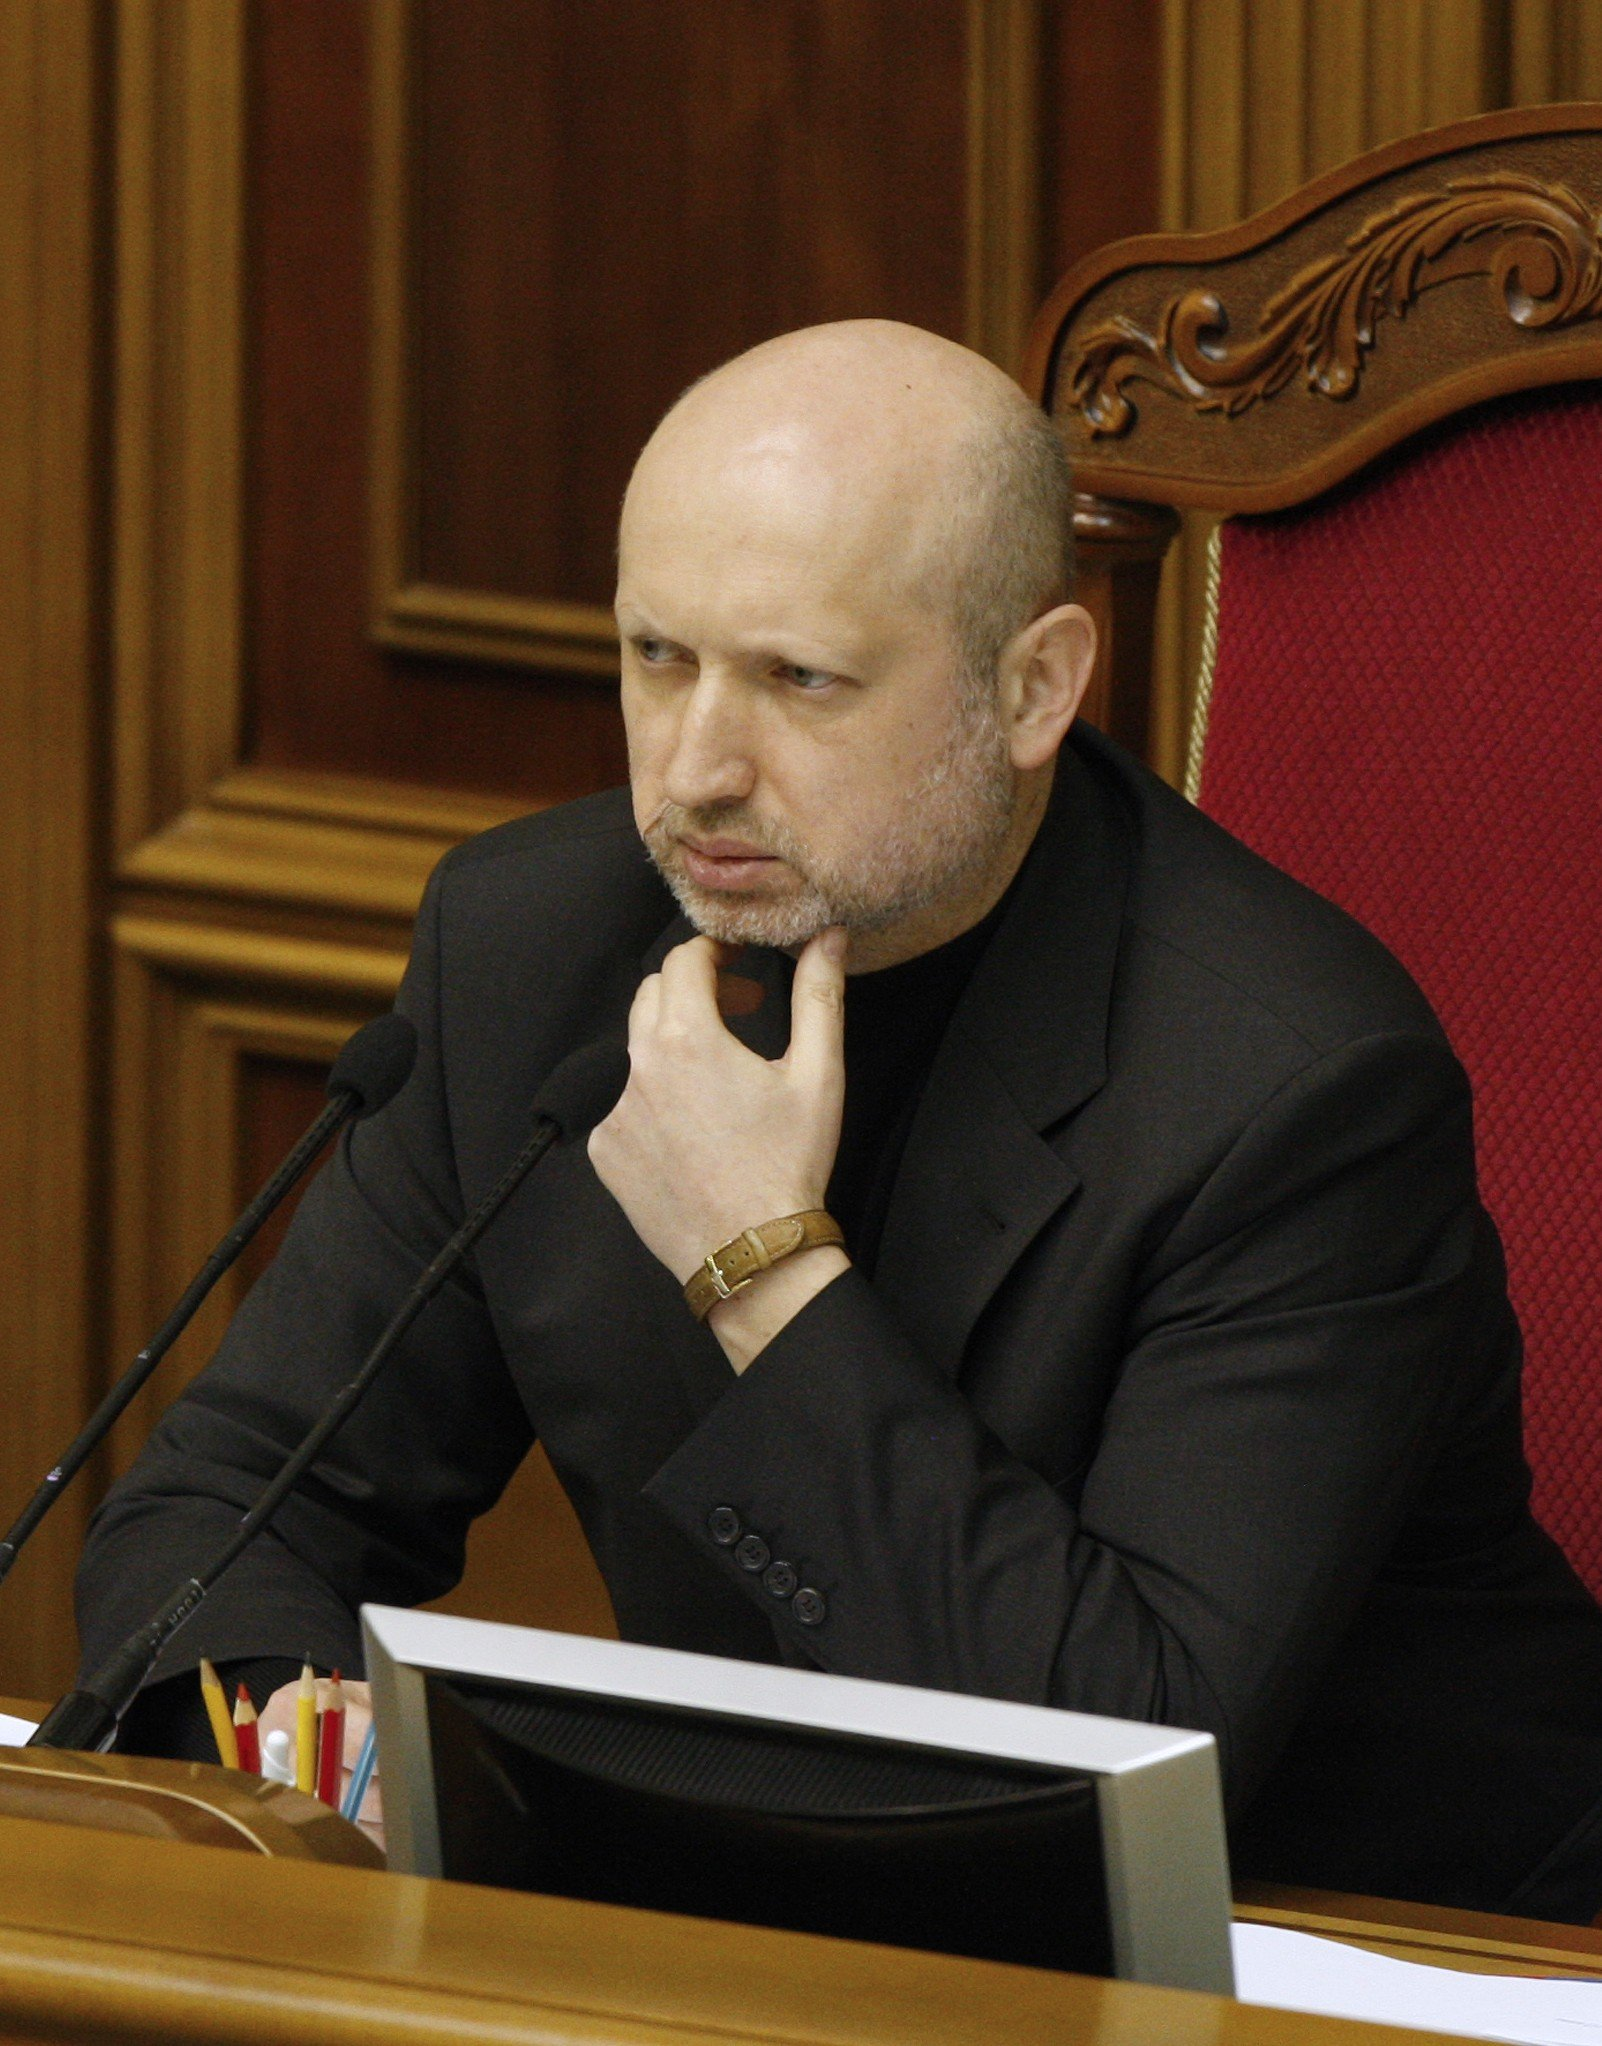 Oleksander Turchinov has been appointed Ukraine's acting president following the ouster of Viktor Yanukovych.